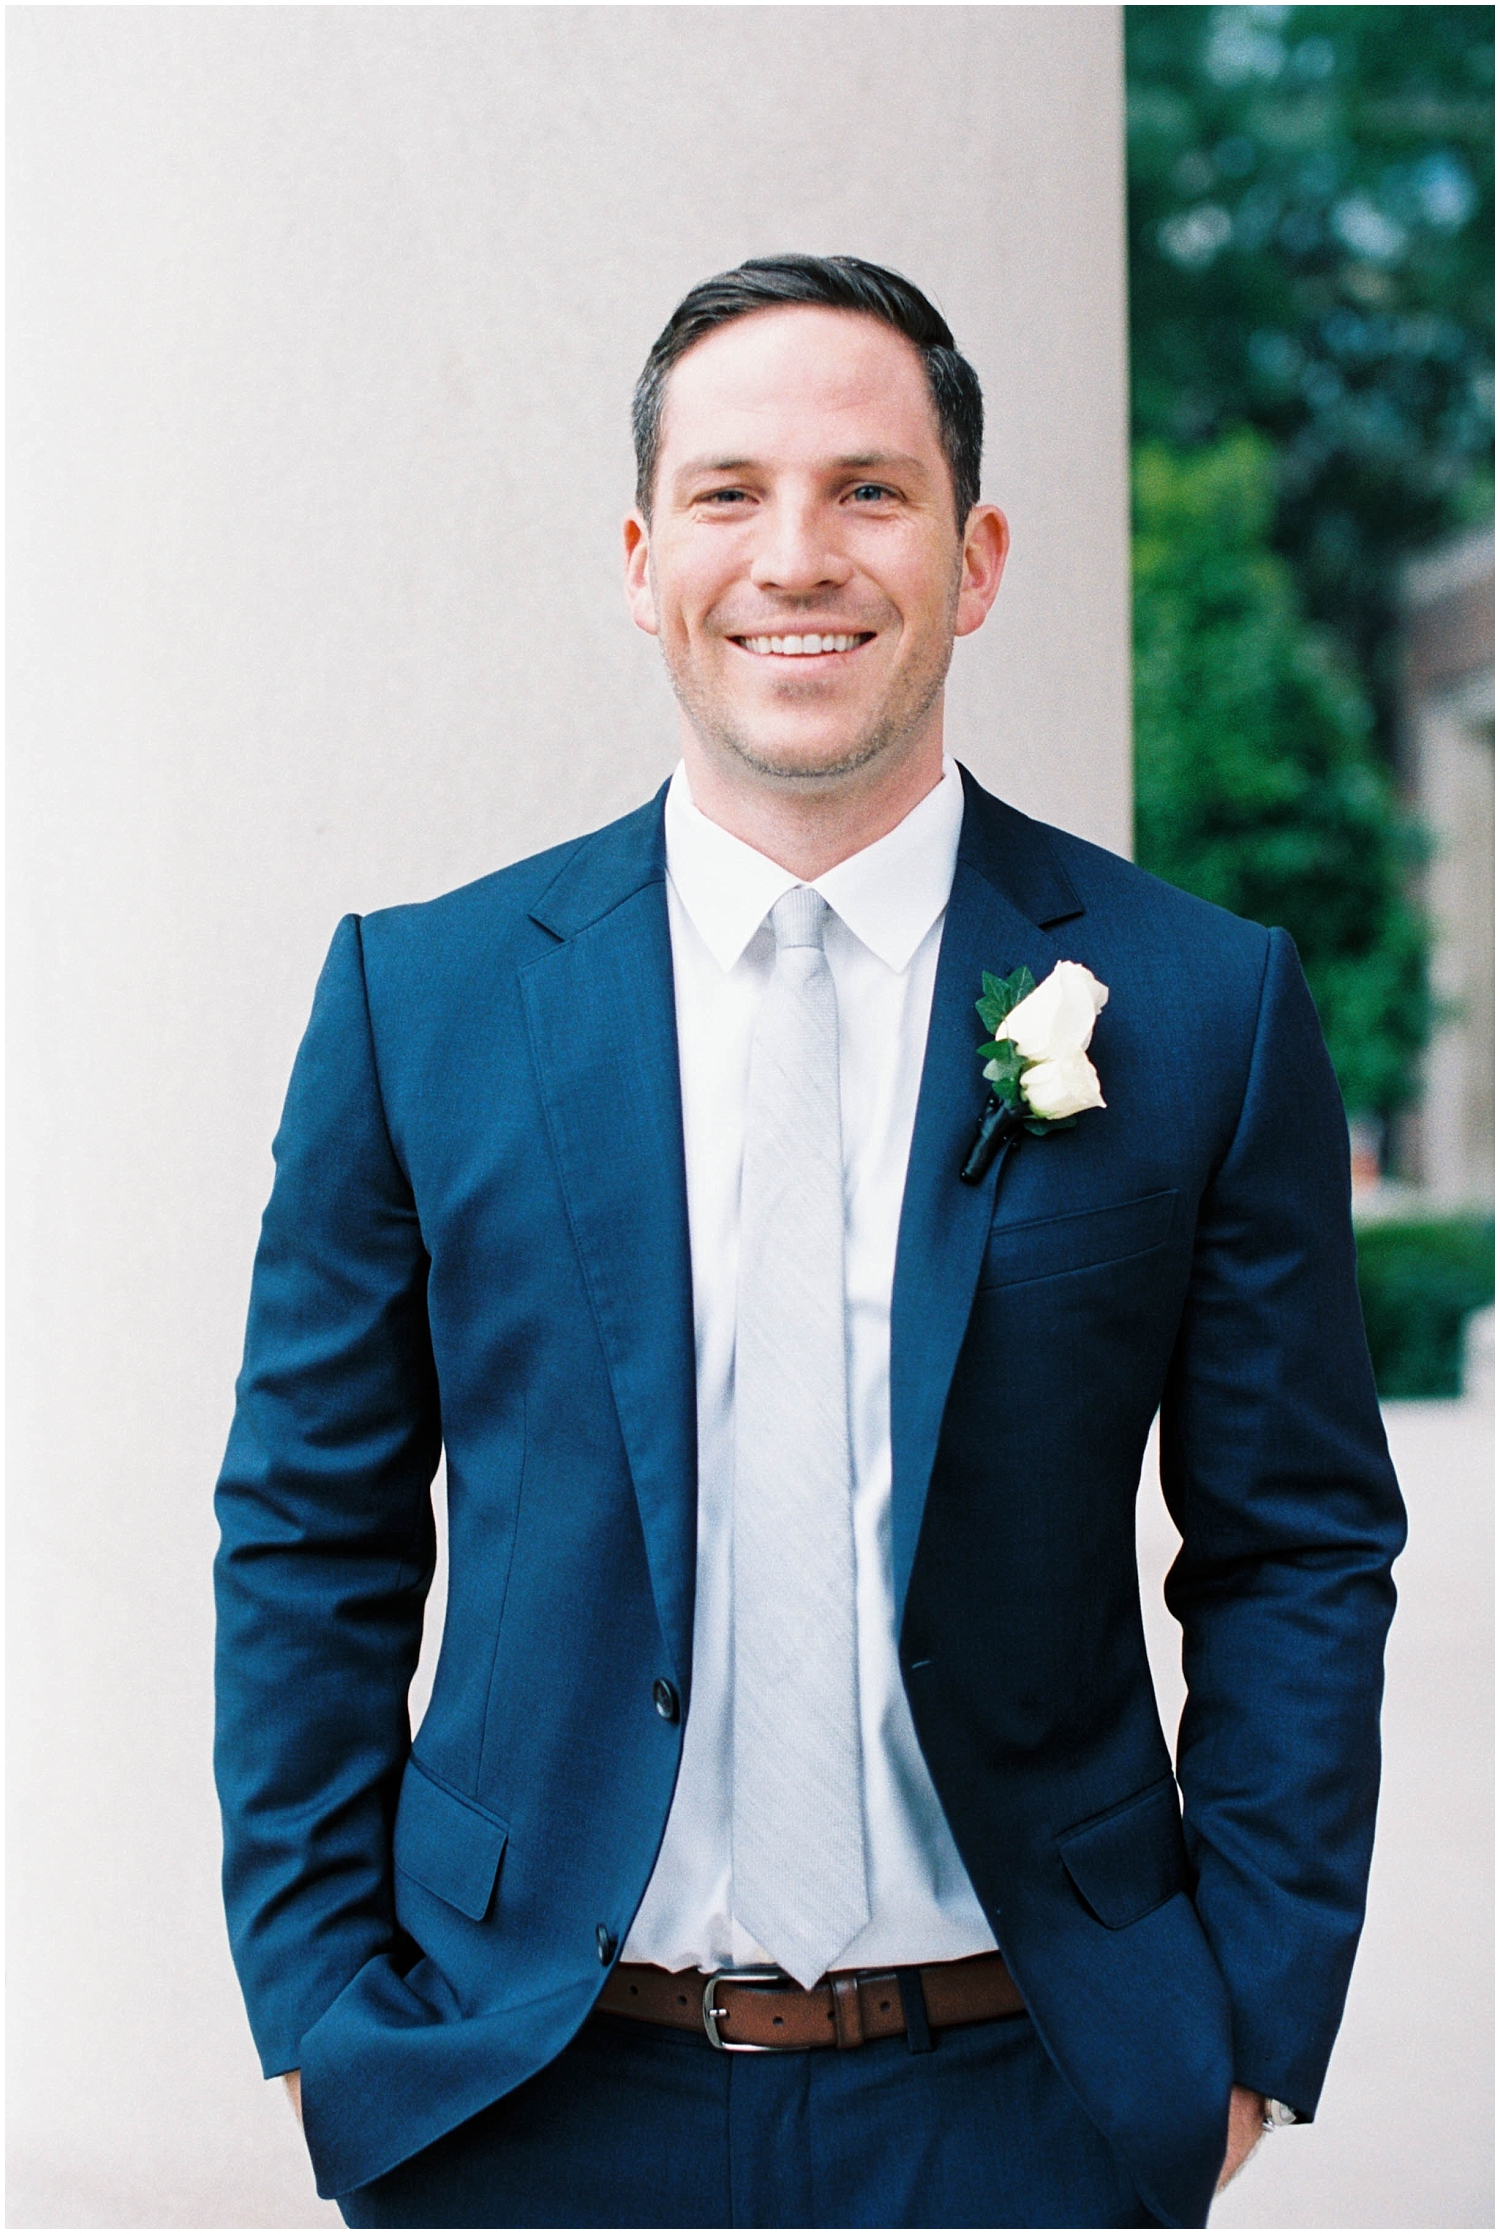 groom wearing a navy suit and boutonniere